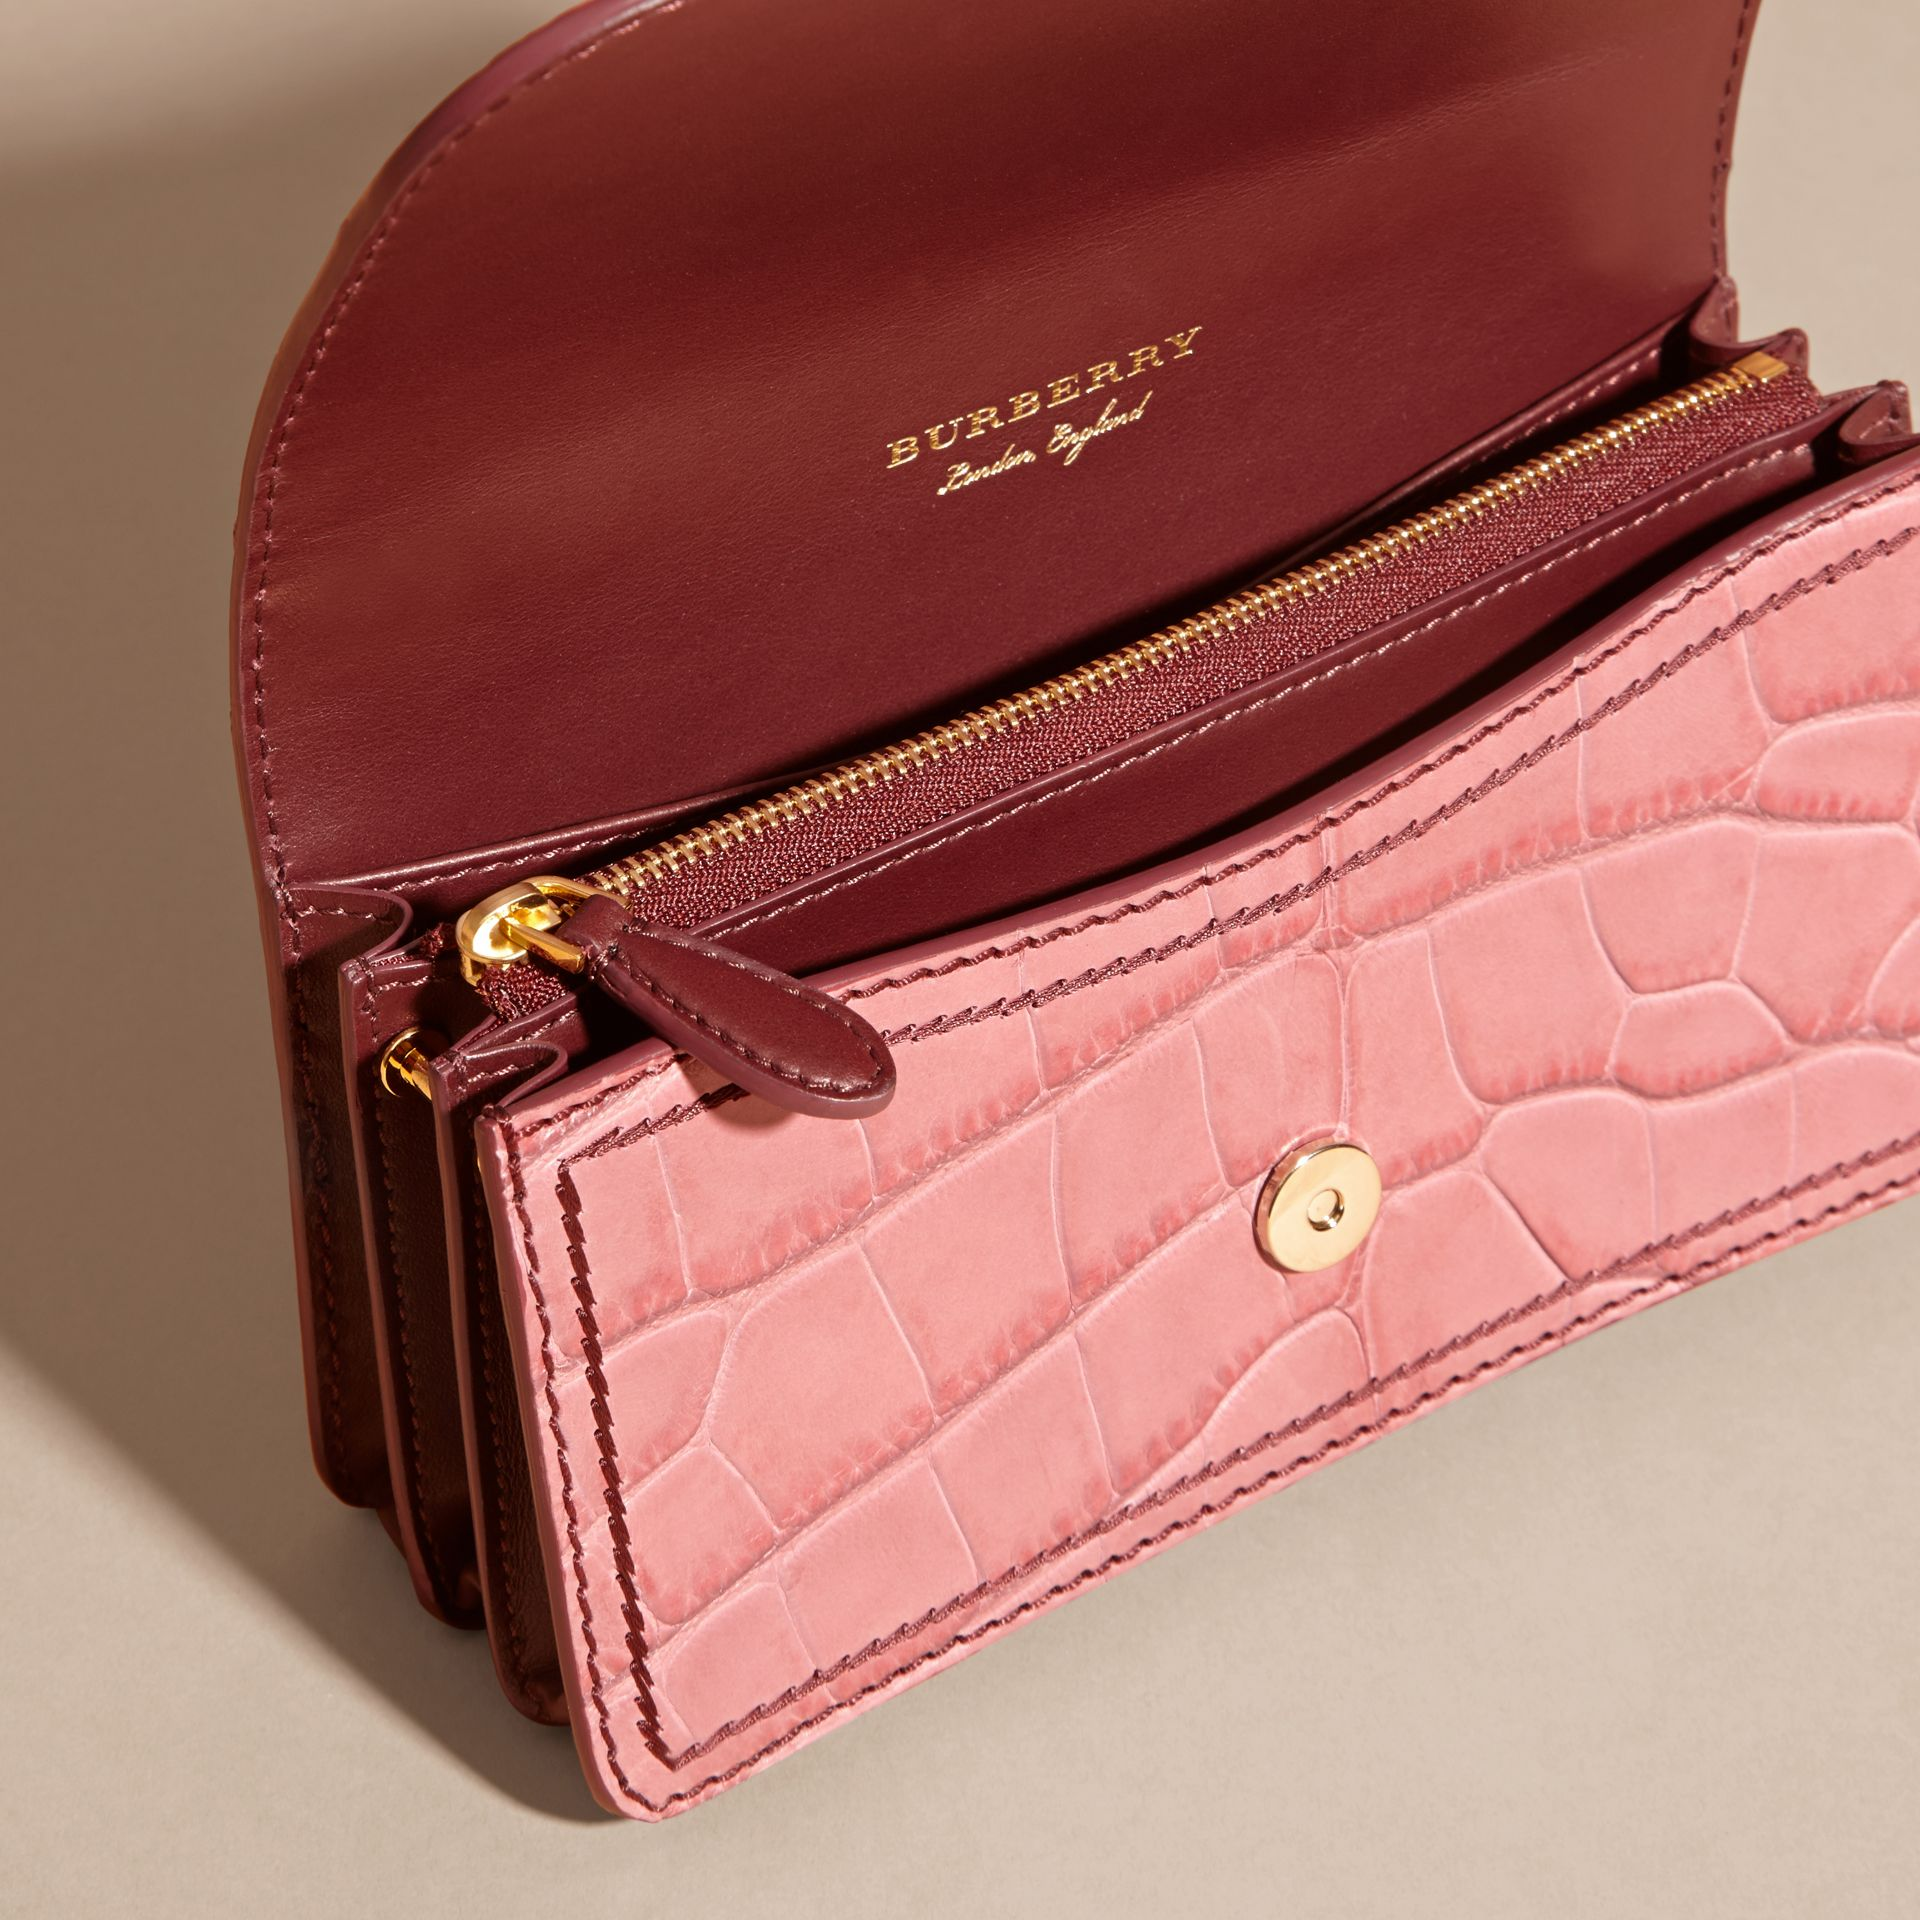 The Small Buckle Bag in Alligator and Leather in Dusky Pink/ Burgundy - Women | Burberry United States - gallery image 6